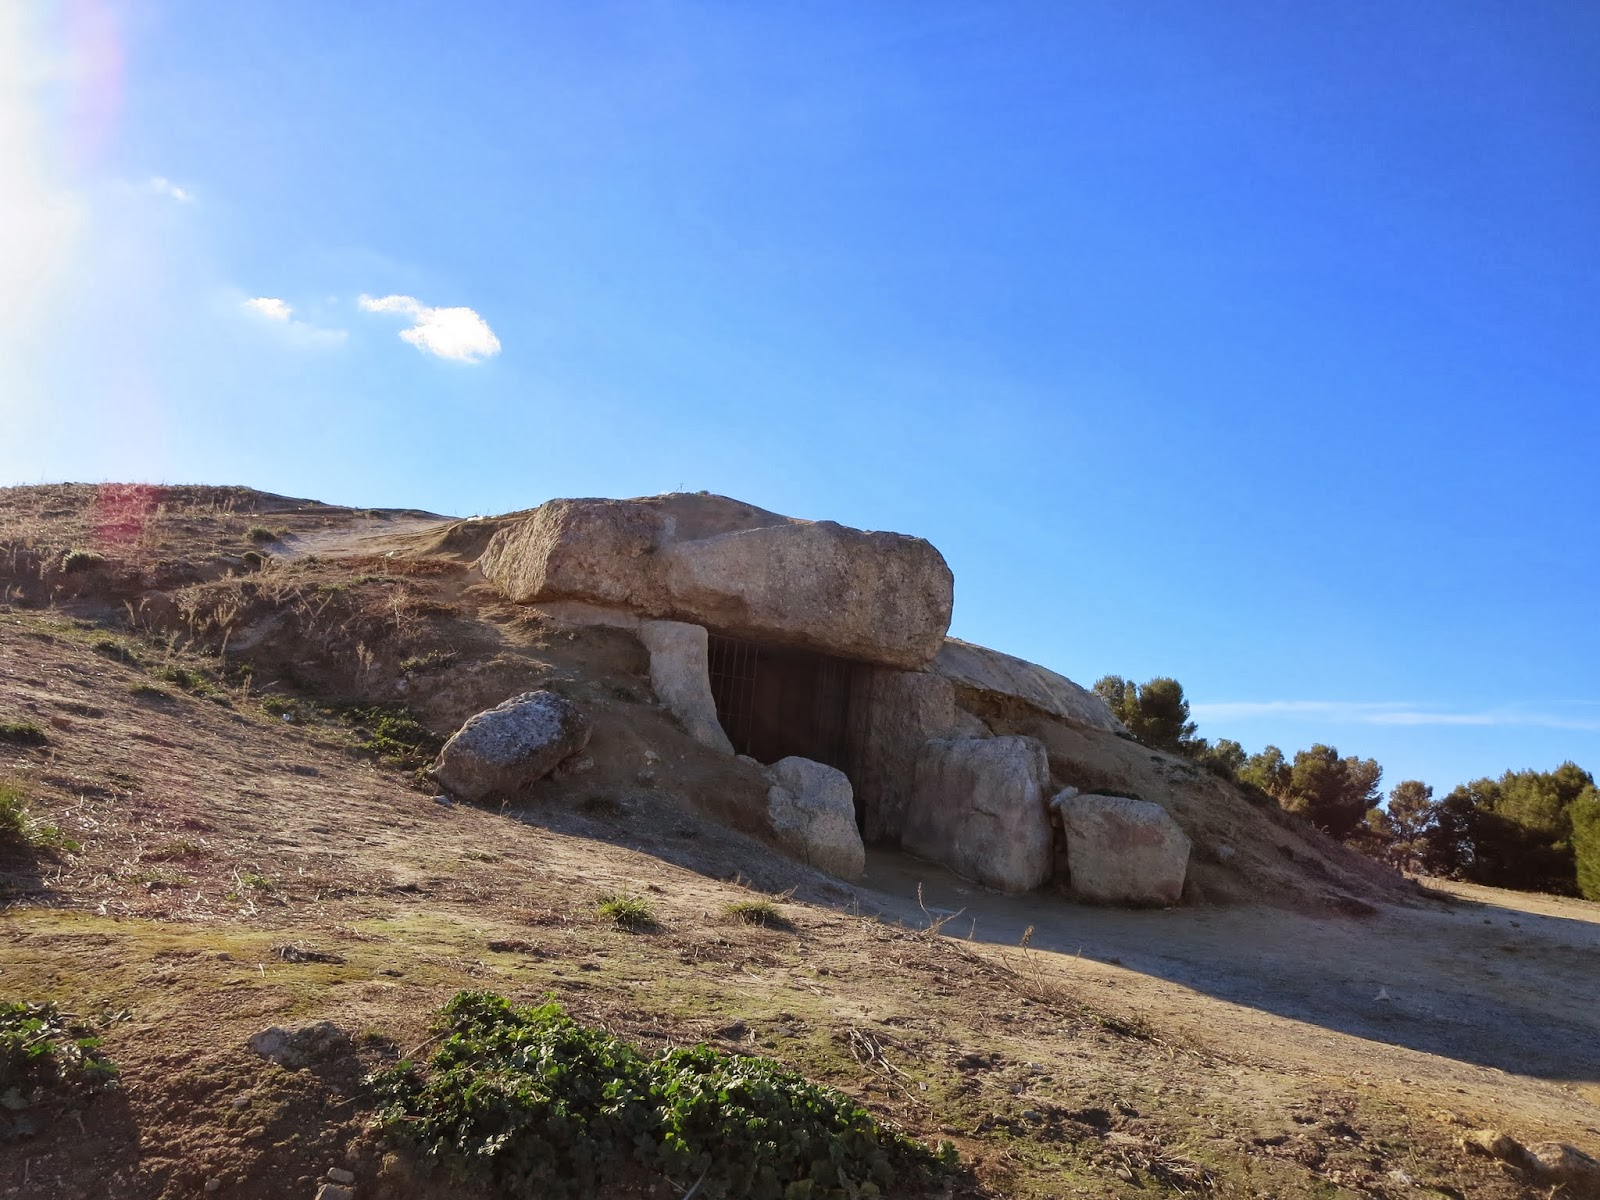 A Dolmen in Antequera, Spain